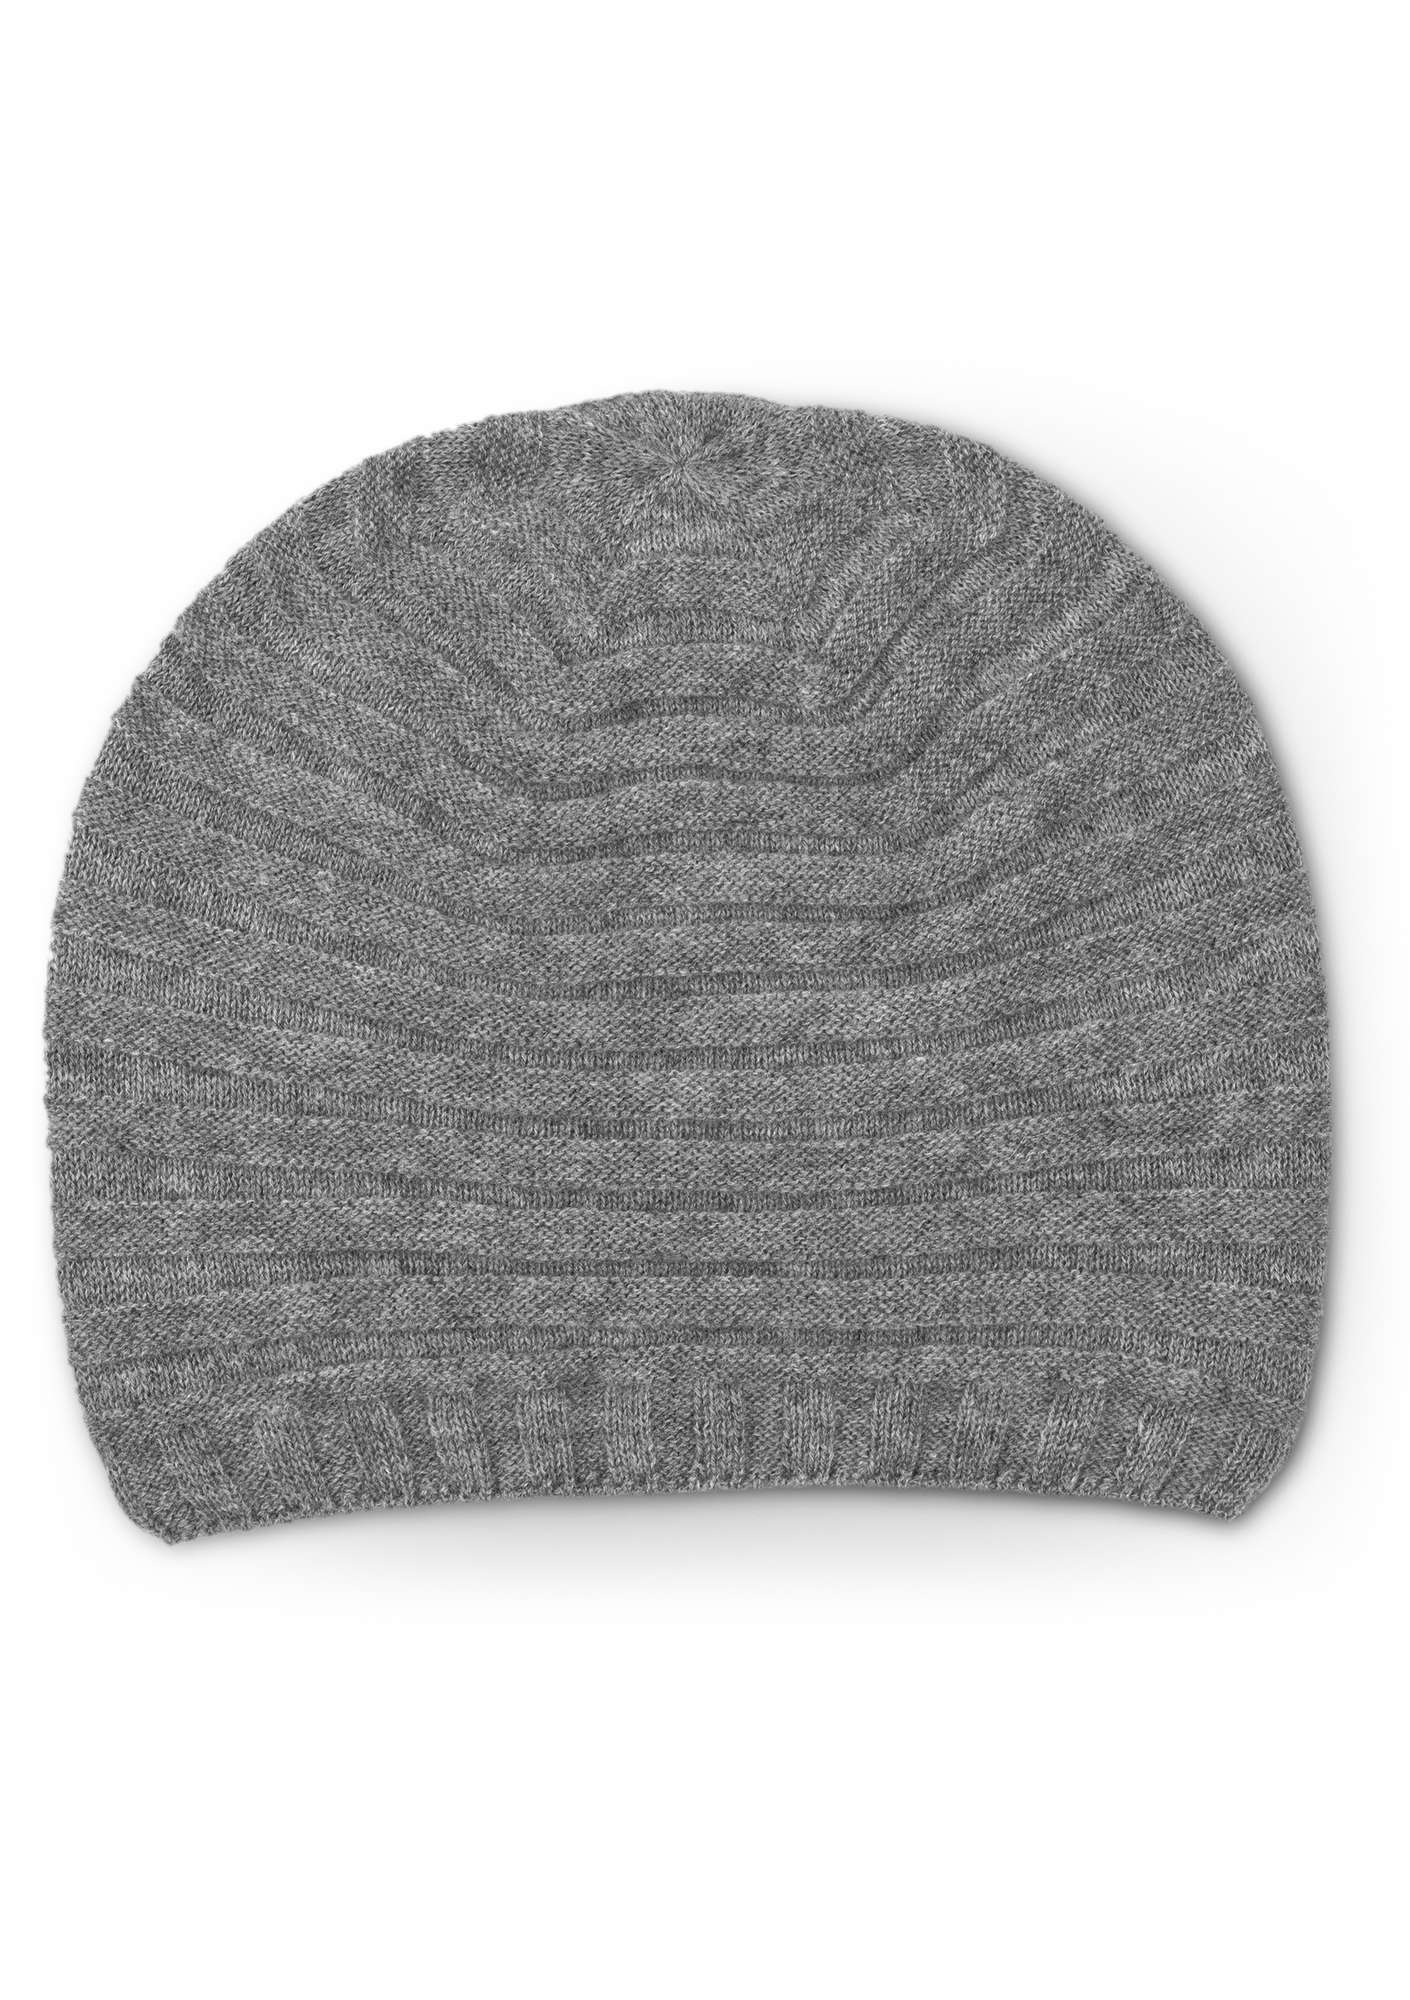 Pleated hat in a recycled cashmere blend gray melange